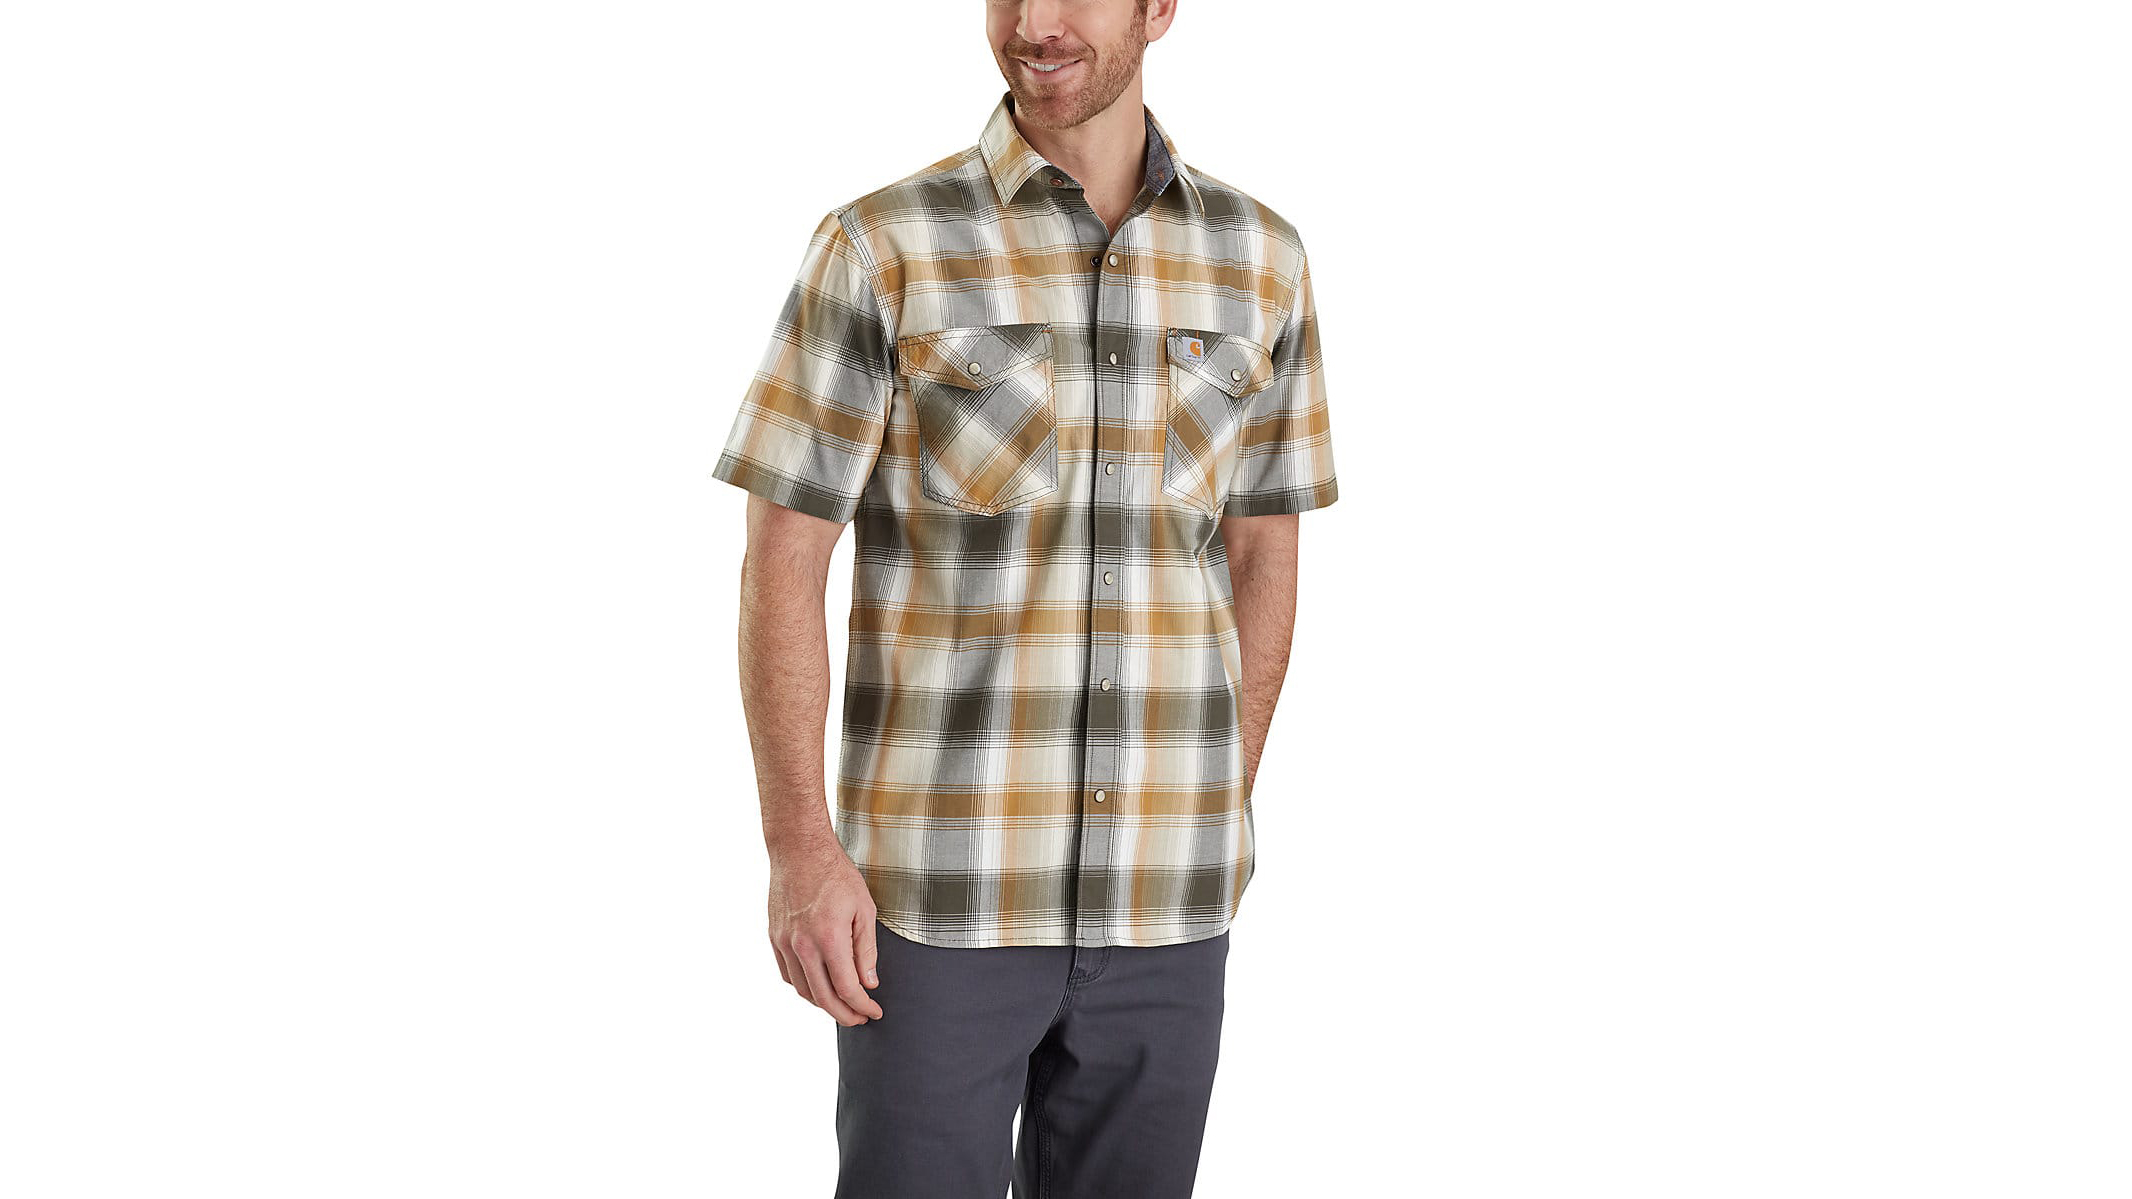 f4af92c7b3b 9 Awesome Spring & Summer Picks from the Carhartt Clearance - Men's ...